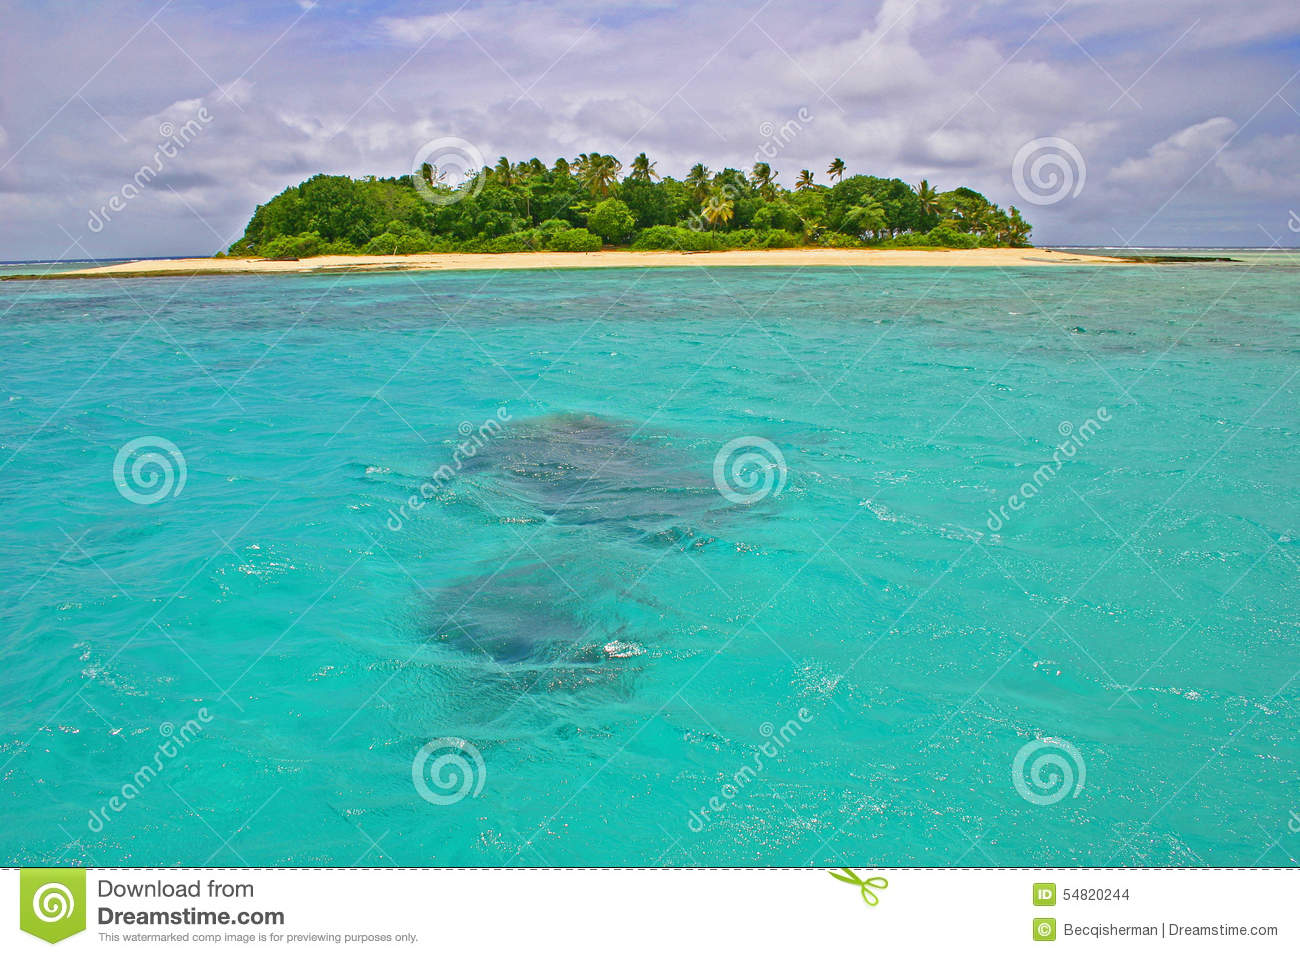 Tropical South Pacific Islands